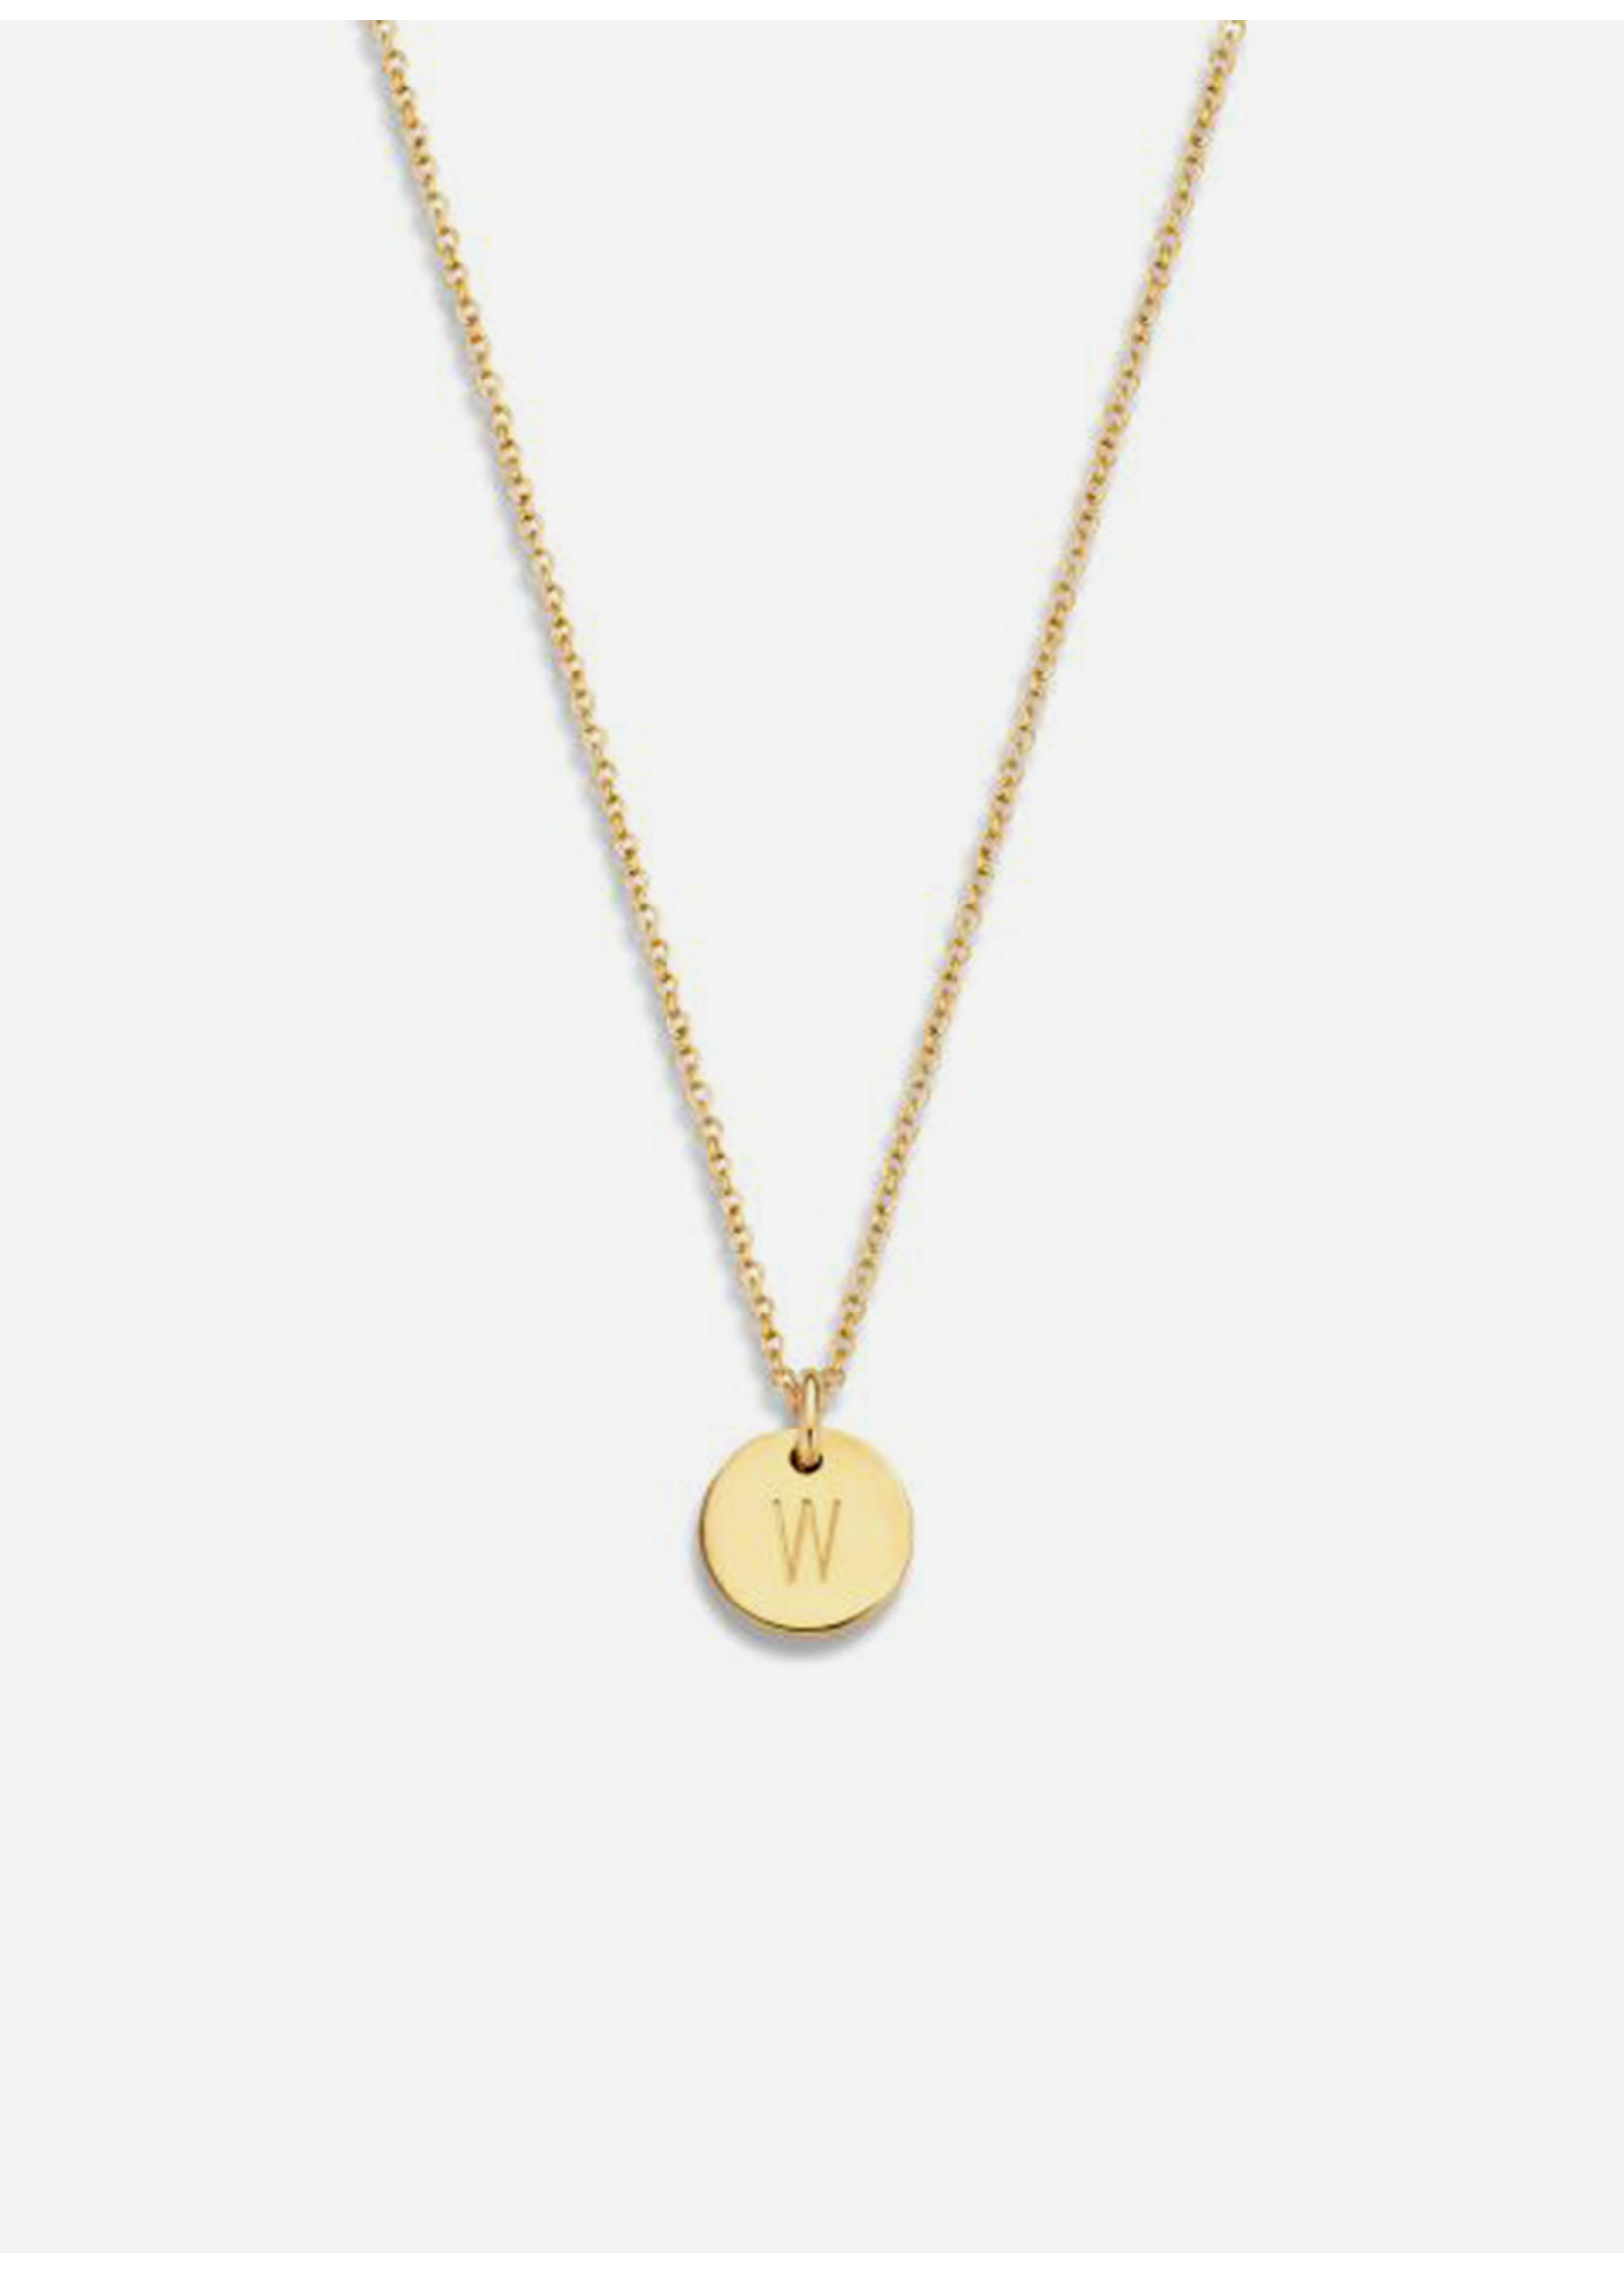 Just Franky Coin Necklace Mini 1 Coin